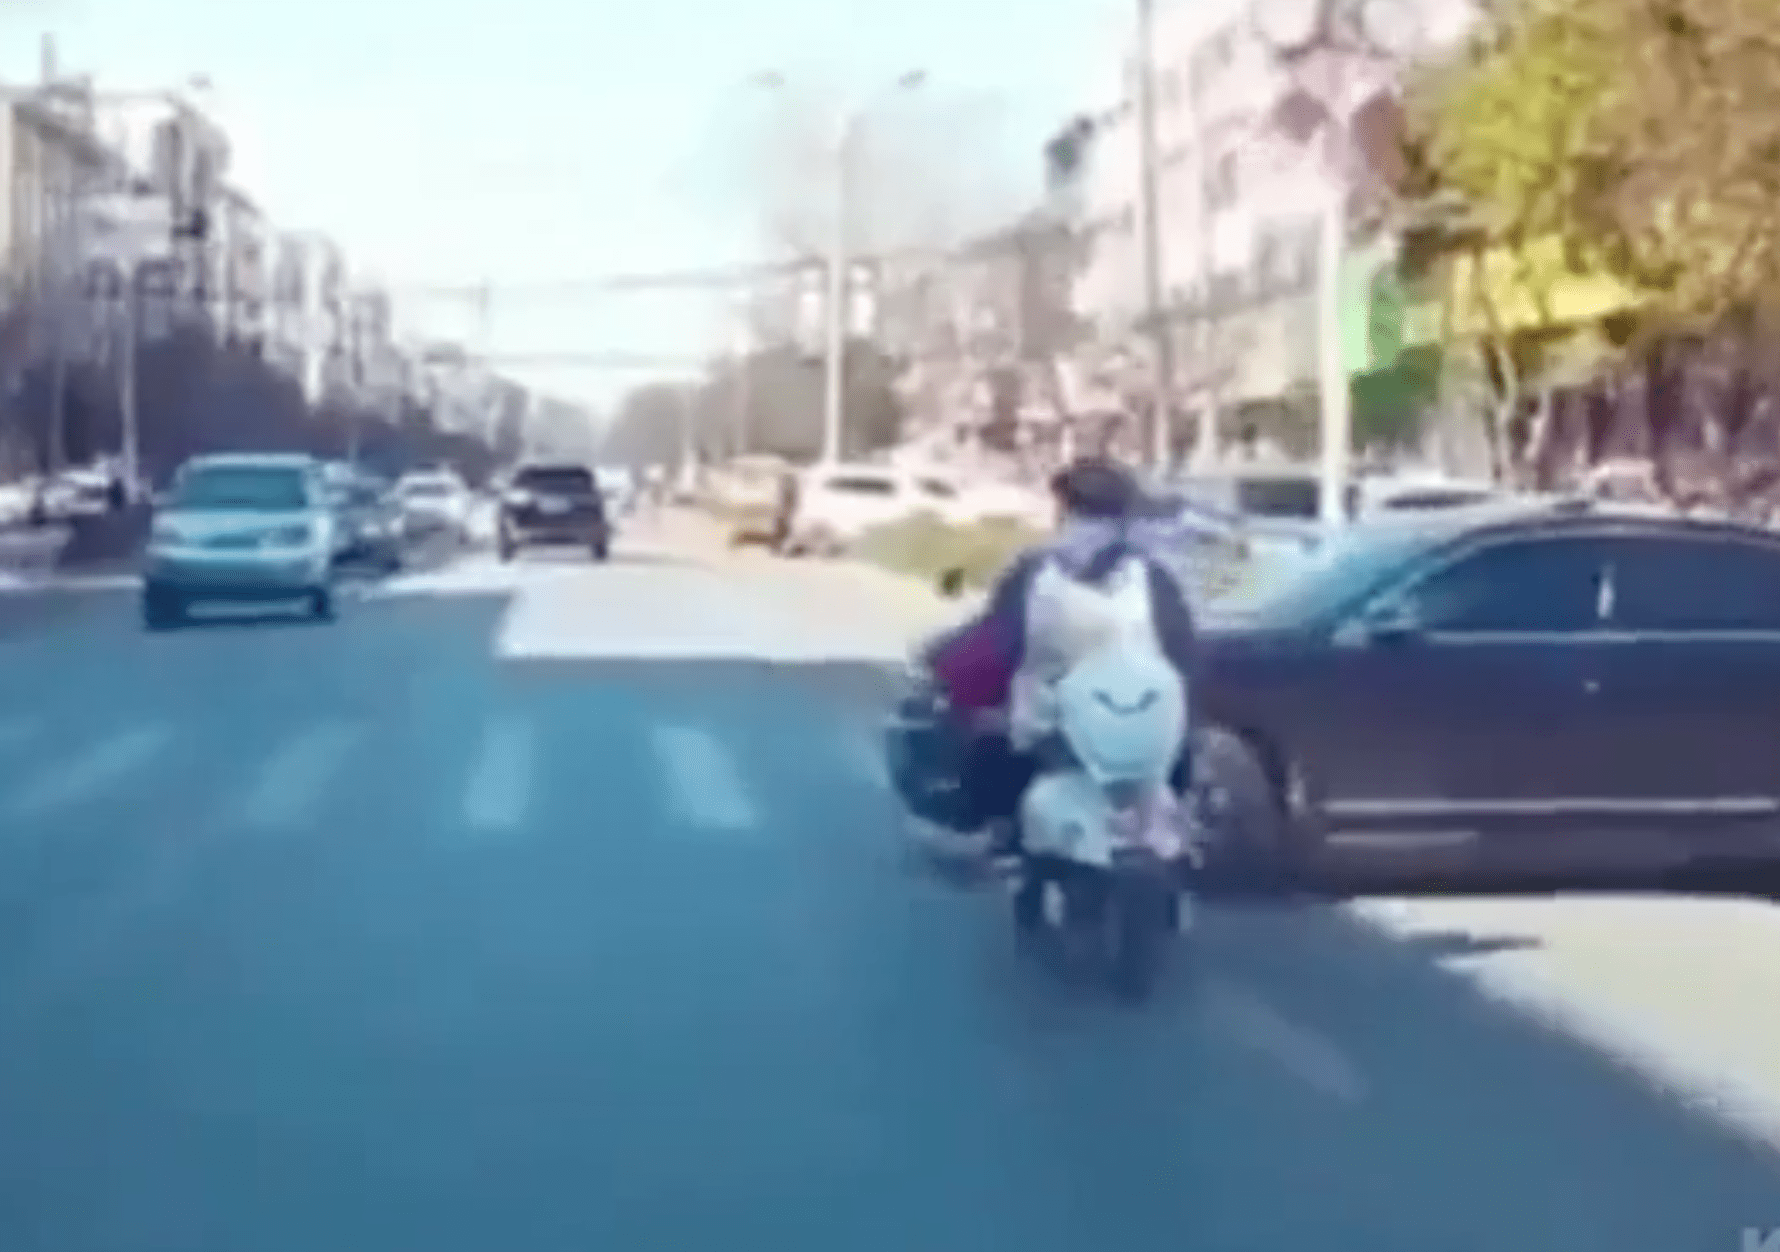 Woman texts while driving, causing an accident   Photo: Reddit/Whatcouldgowrong